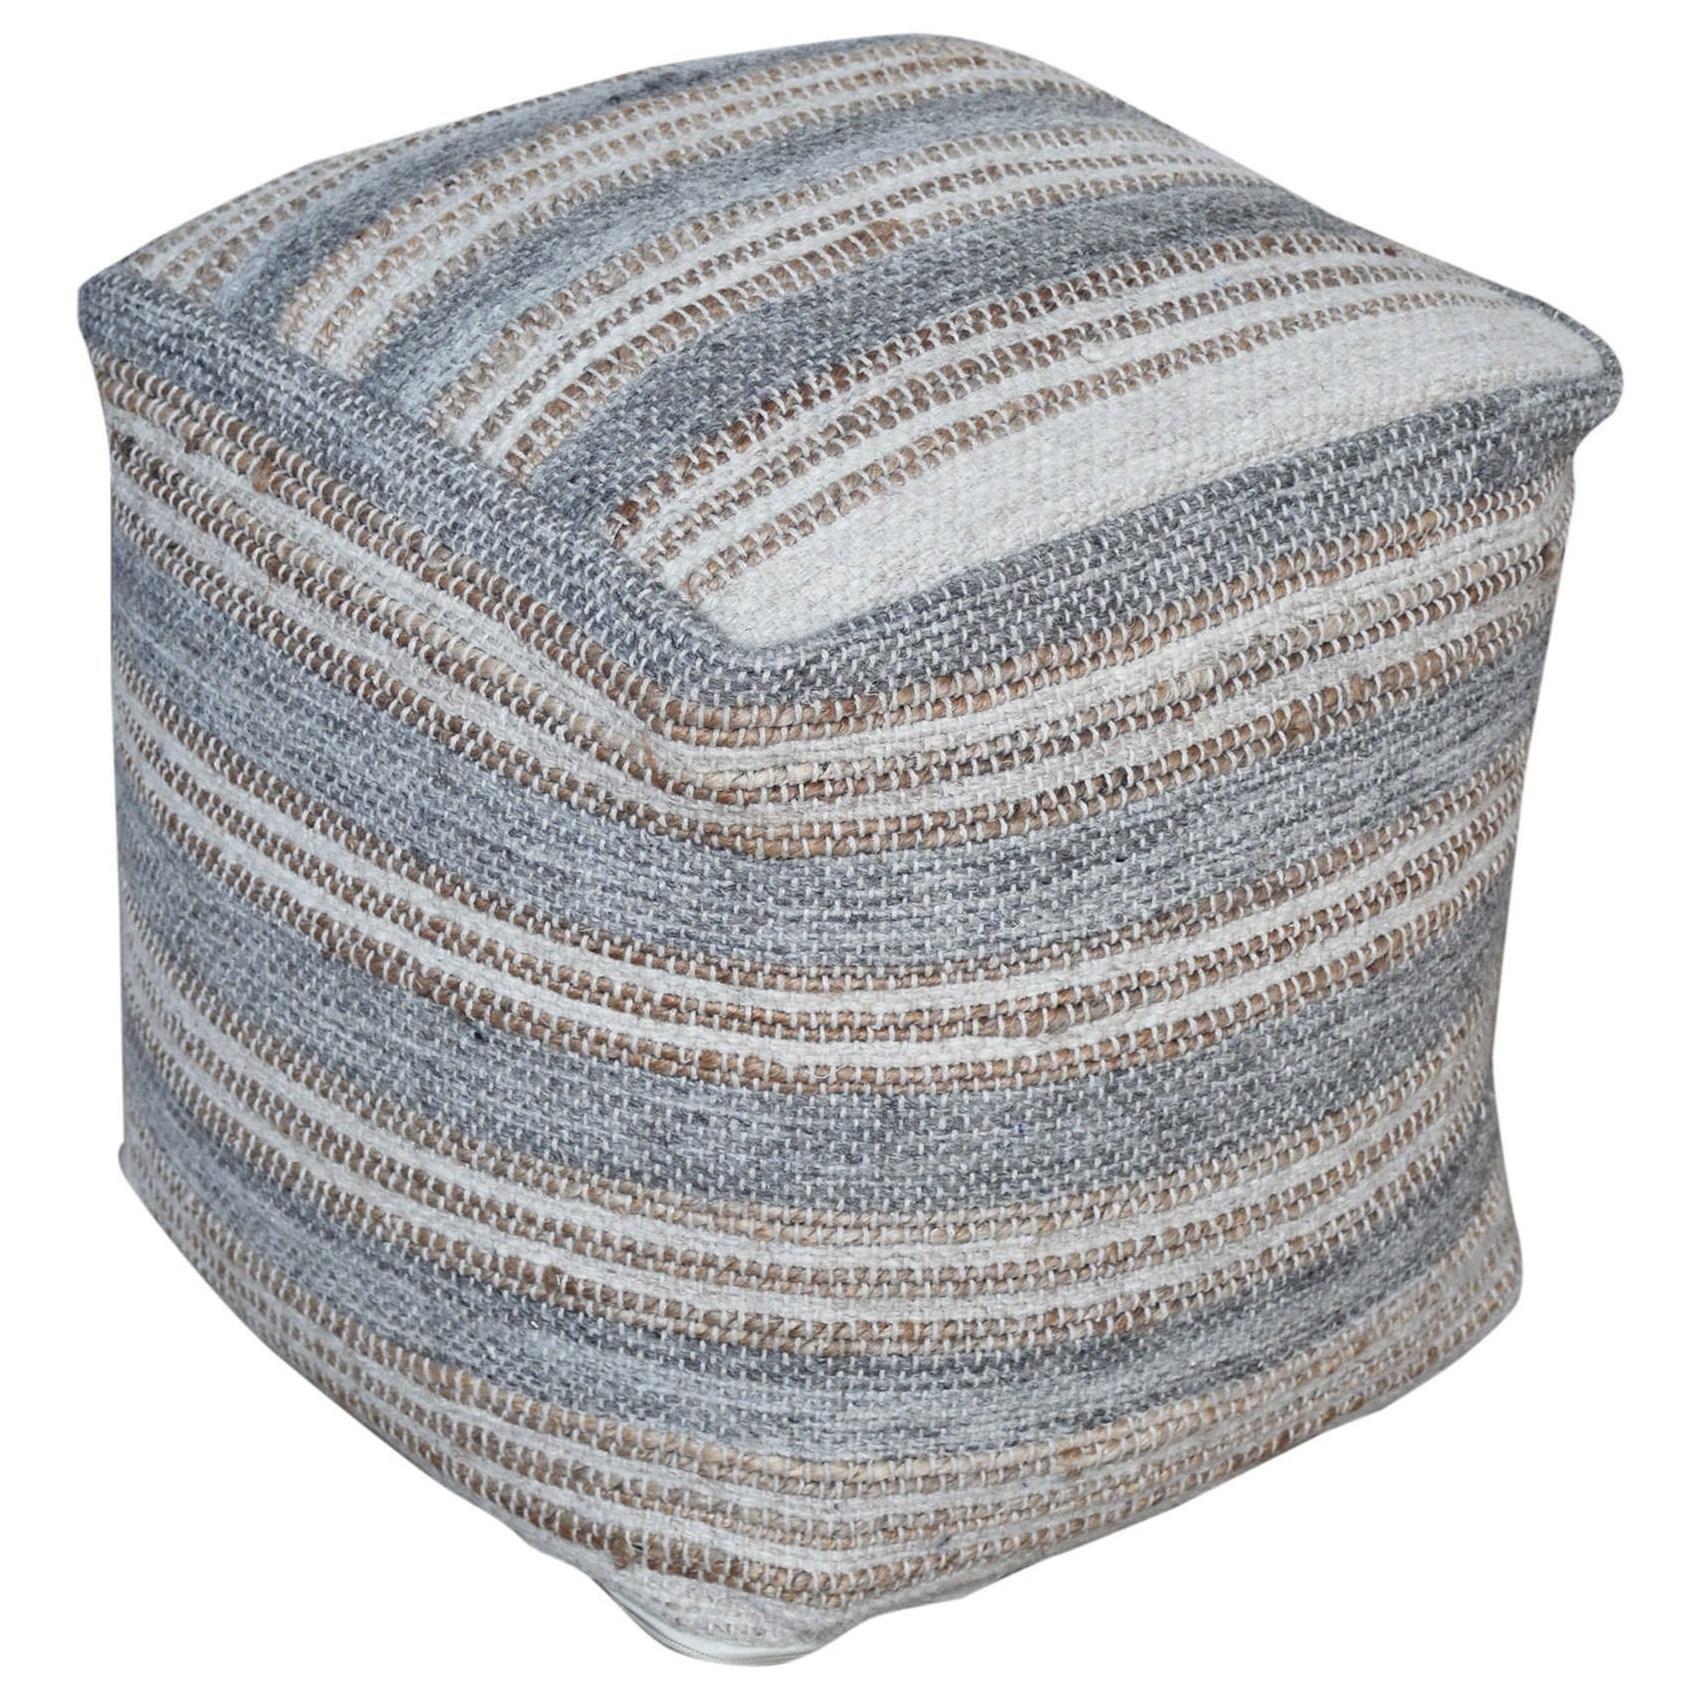 Accent Furniture - Ottomans Mesick Handwoven Gray Pouf by Uttermost at Factory Direct Furniture